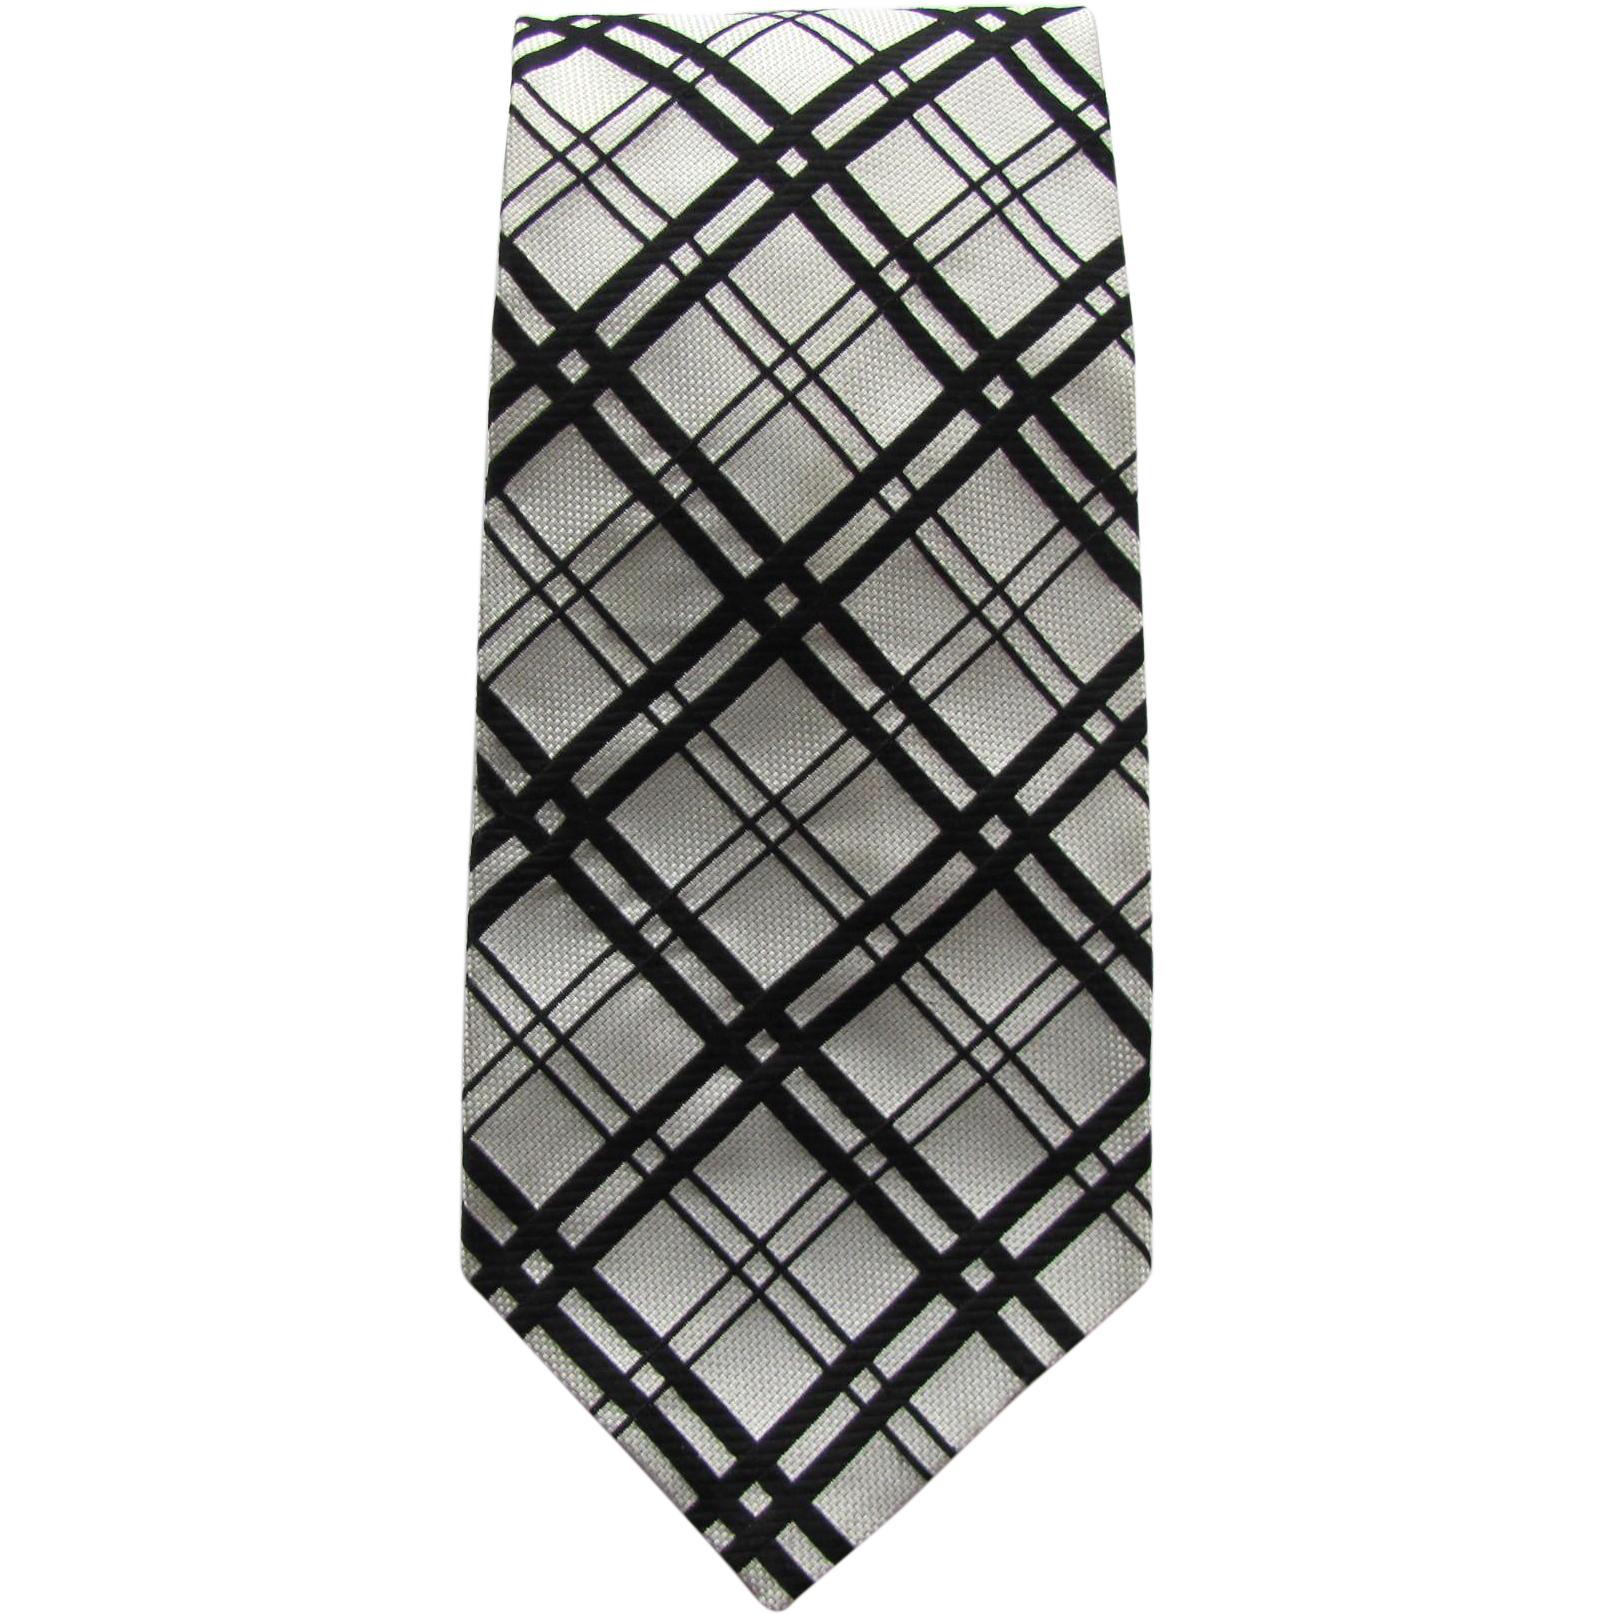 Vintage 1950's Plaid Necktie in Light Grey and Black – Wide and Bold